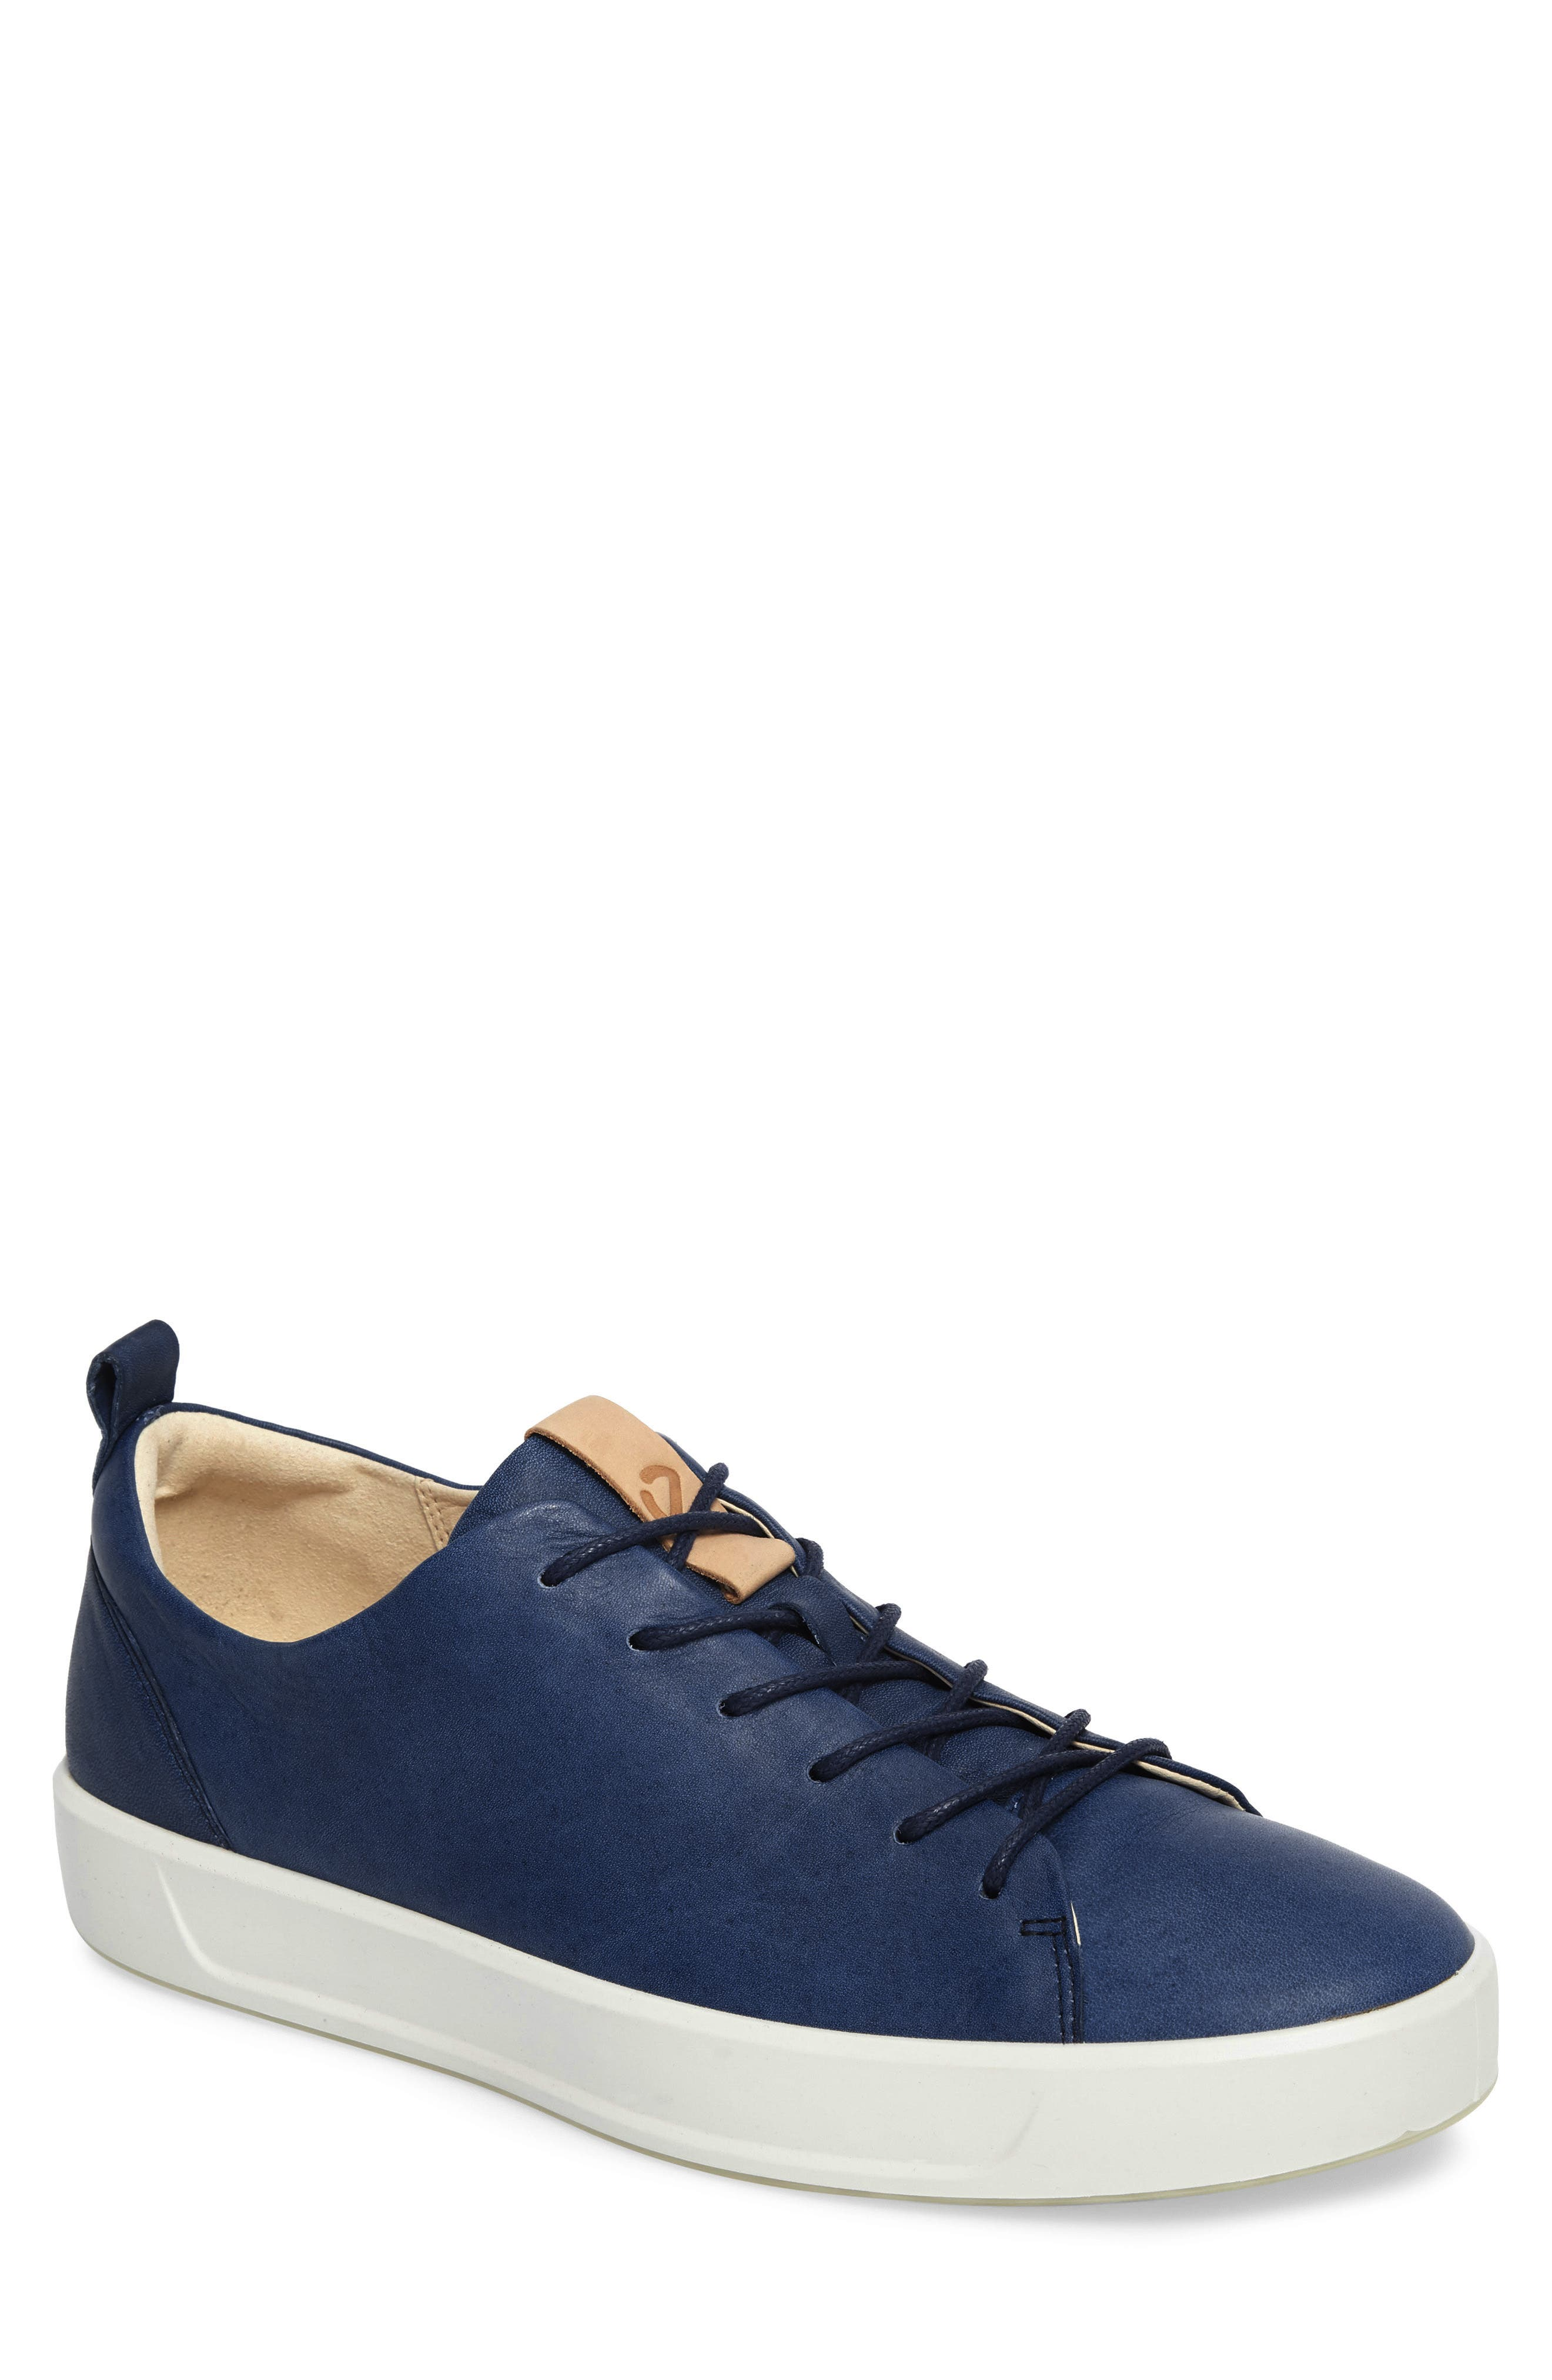 Soft 8 Sneaker,                         Main,                         color, Indigo 7 Leather